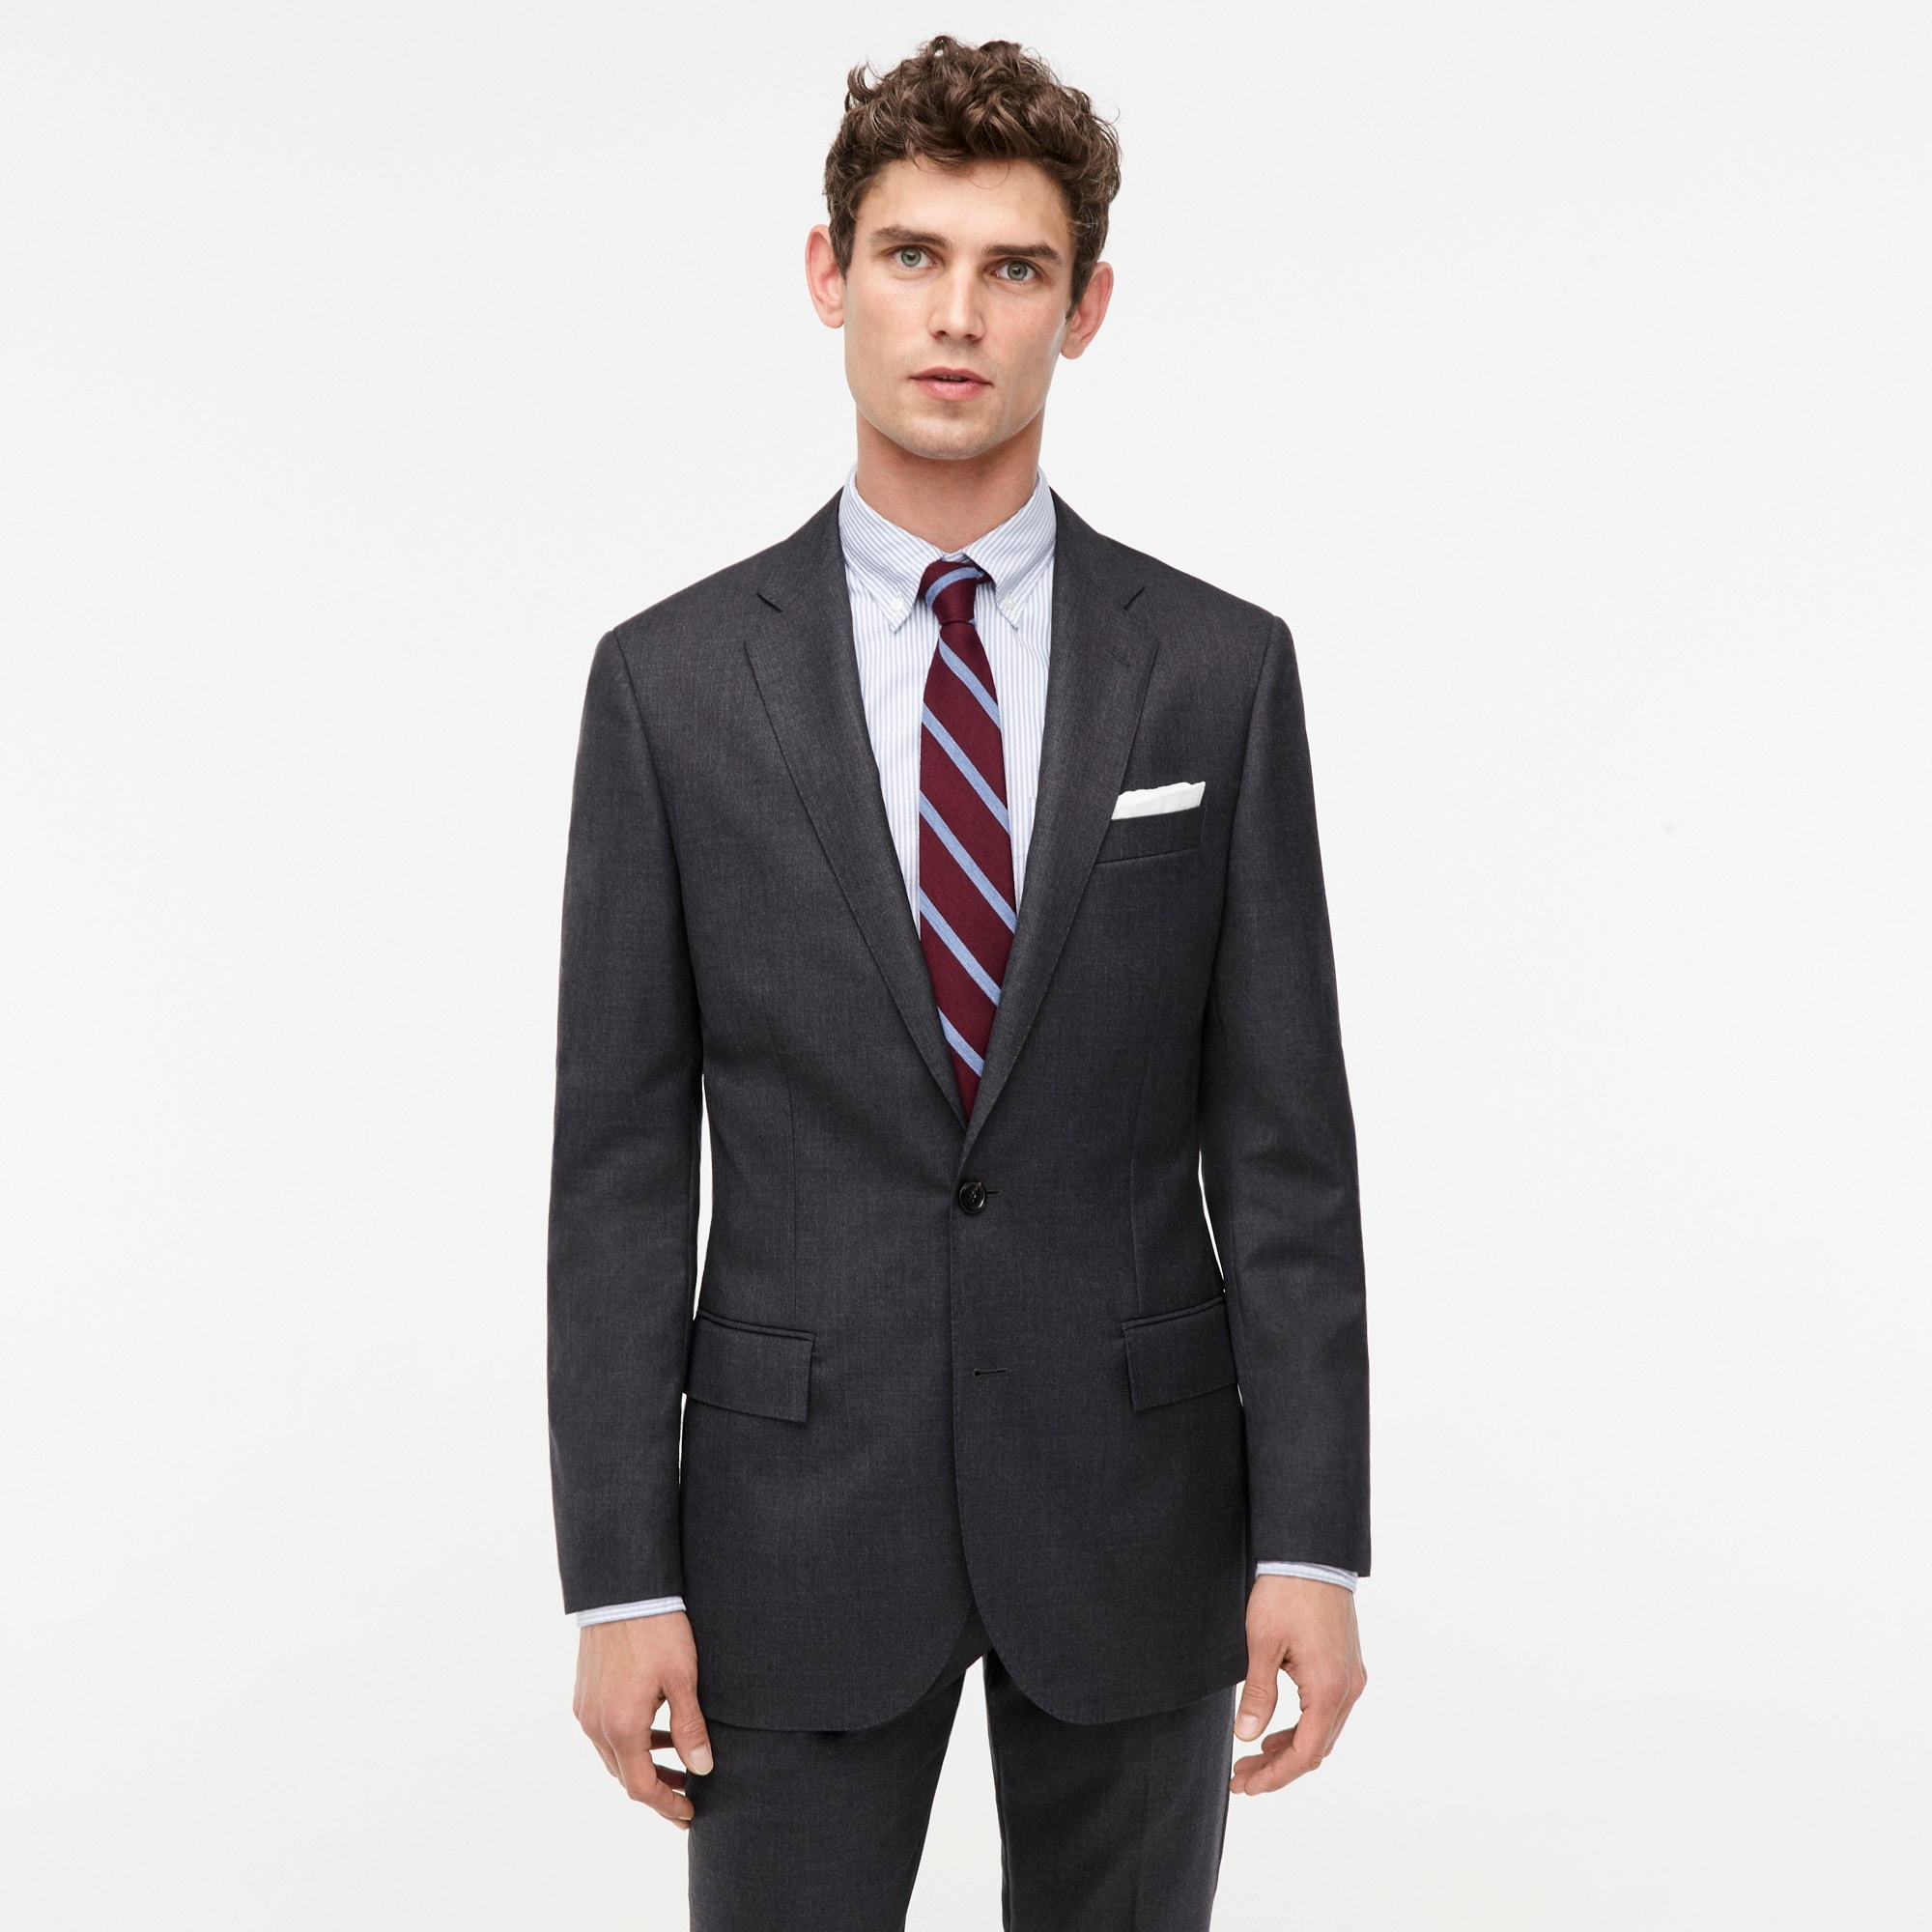 Image 1 for Ludlow Slim-fit suit jacket with double vent in charcoal American Wool